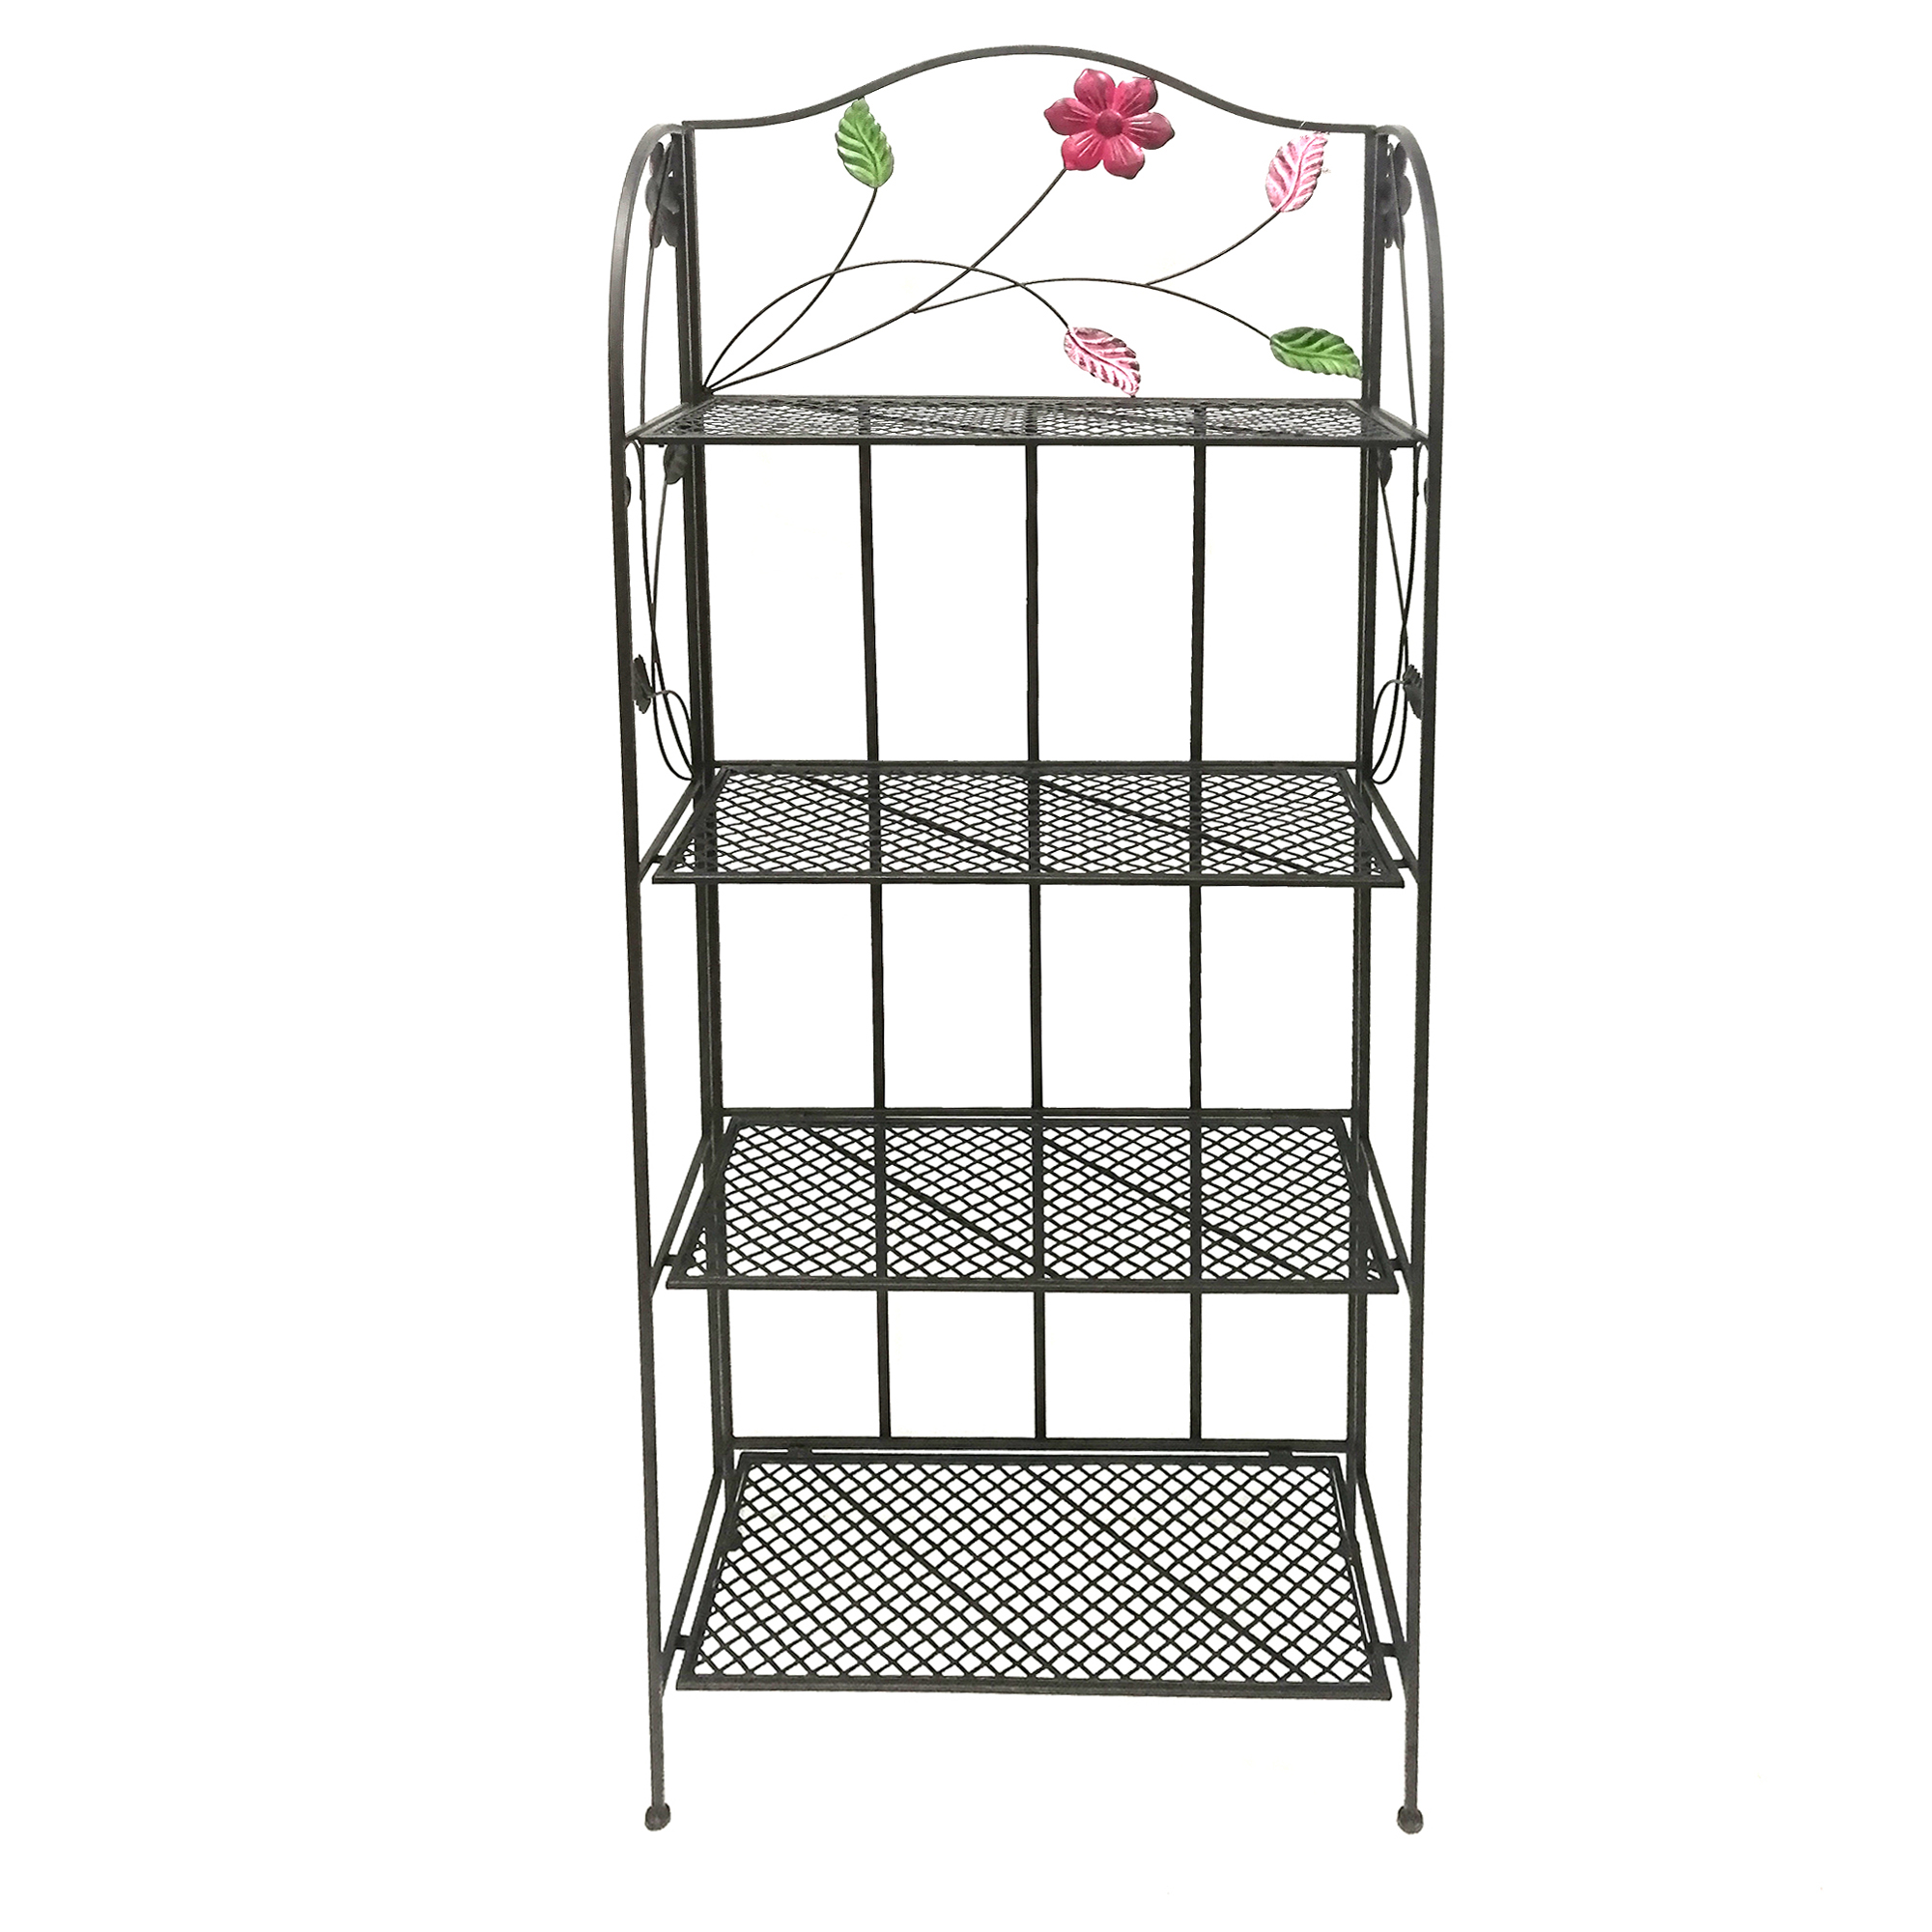 Four Tier Metal Foldable Bakers Rack with Flower Motifs, Black